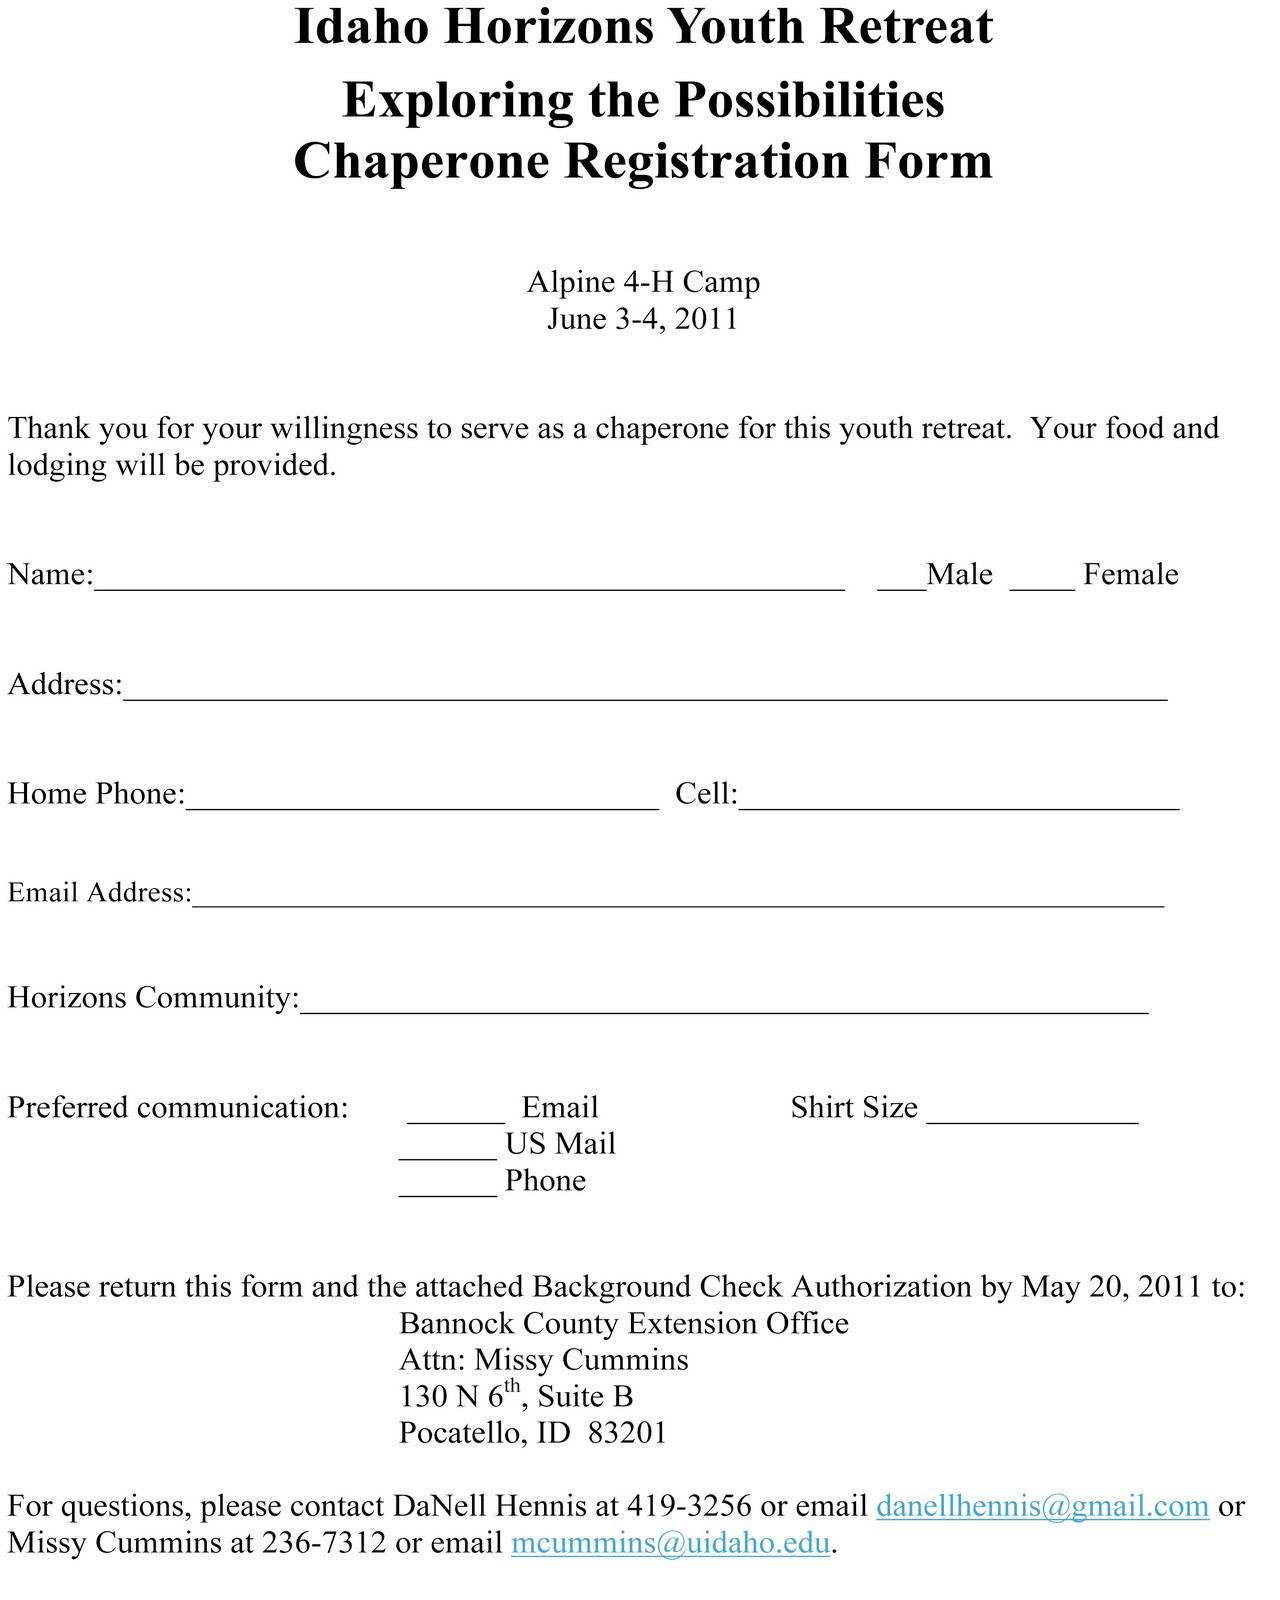 Youth Retreat Registration Form Template